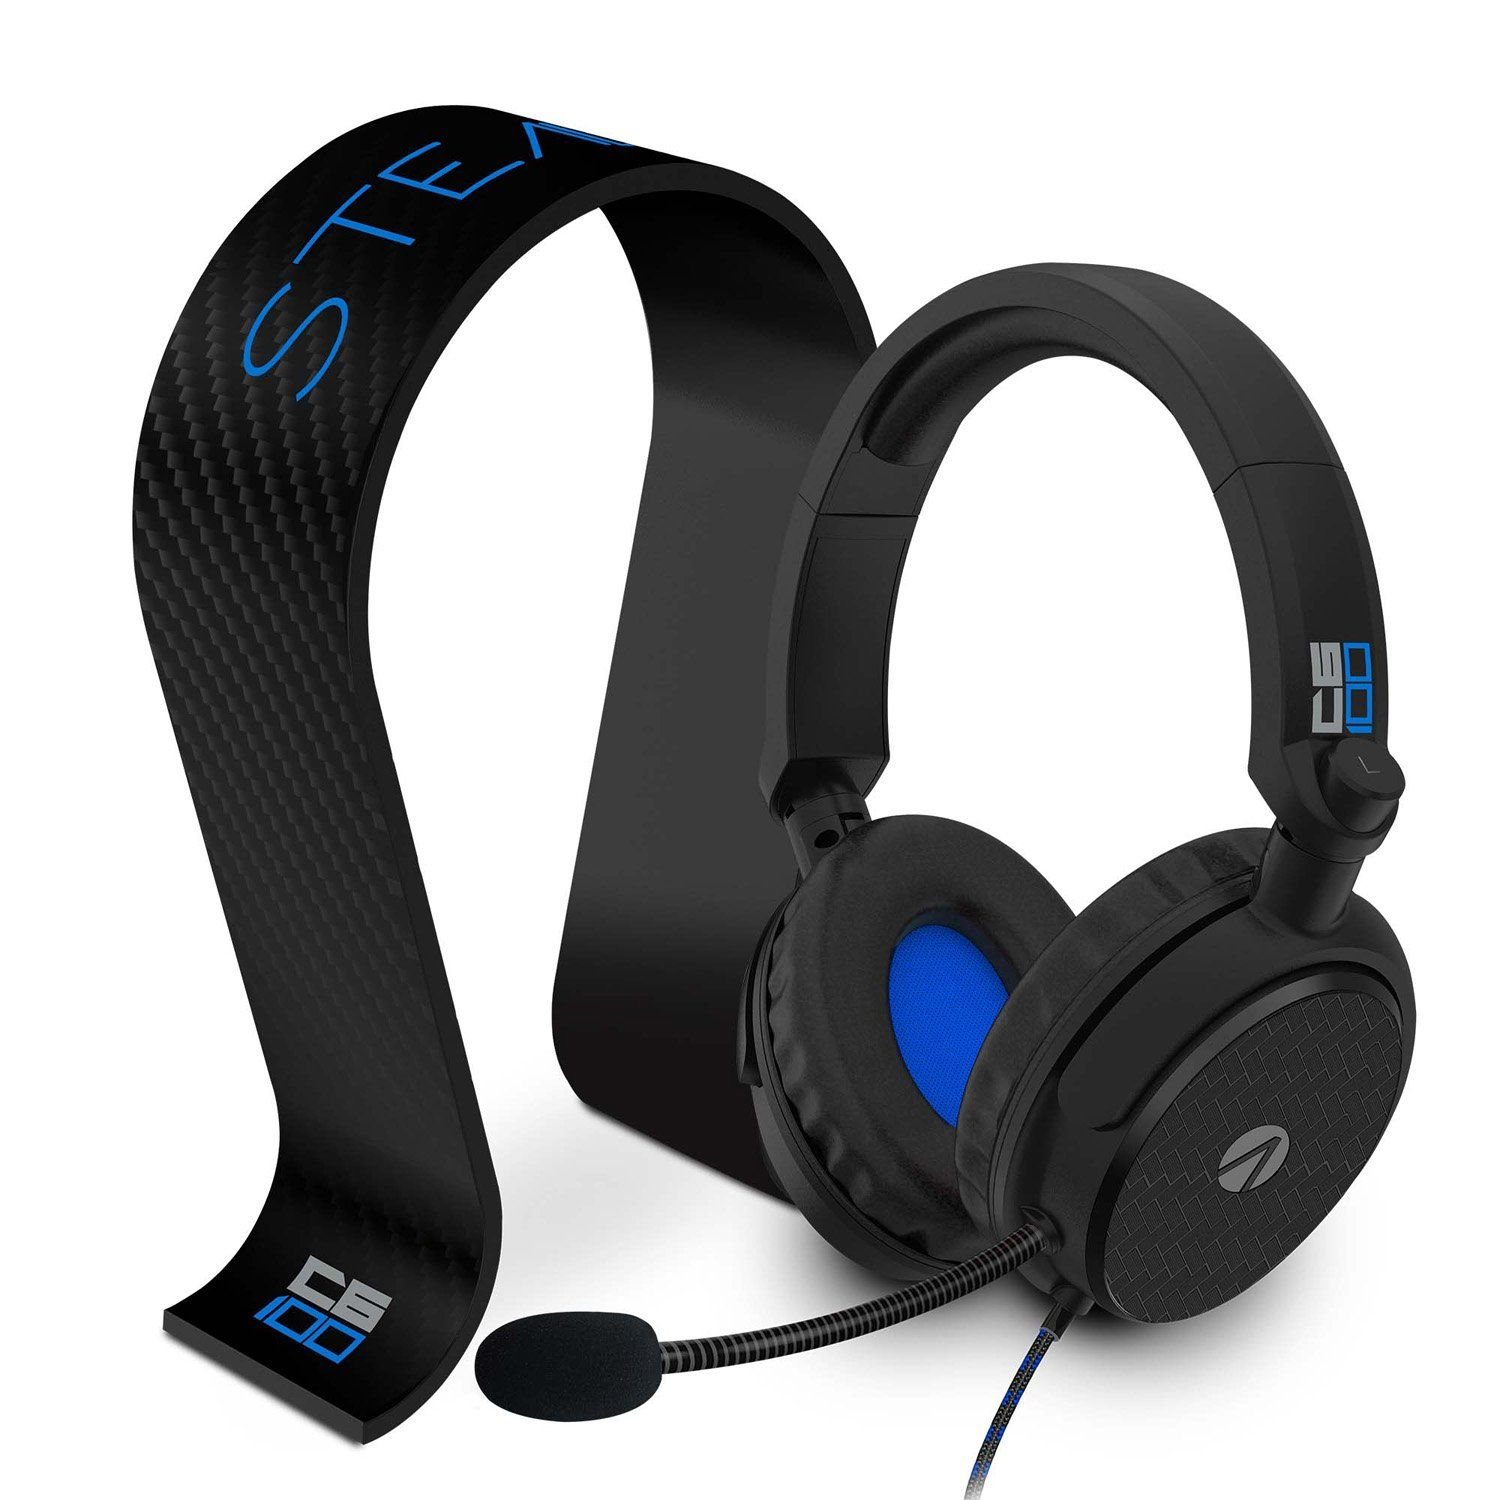 STEALTH C6-100 Stereo Gaming Headset & Stand - Black & Blue